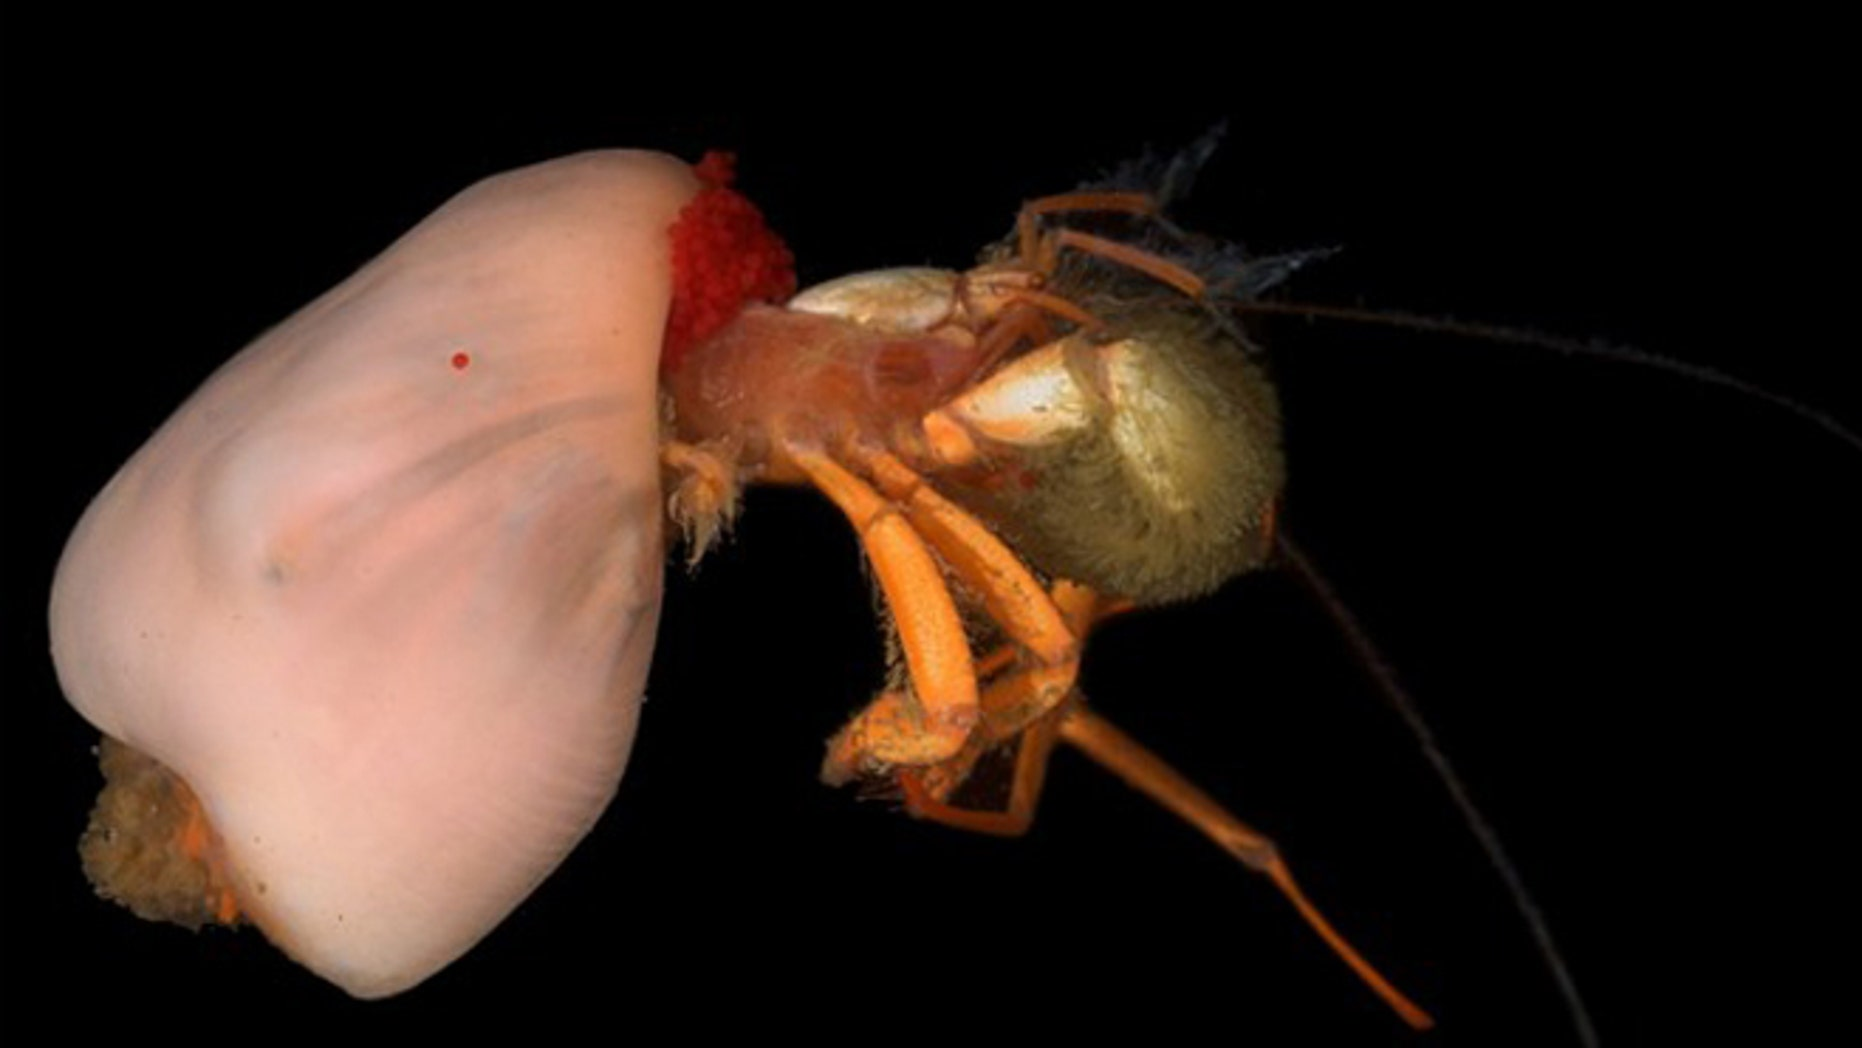 Deep sea symbiosis: A hermit crab uses an anemone as a shell.